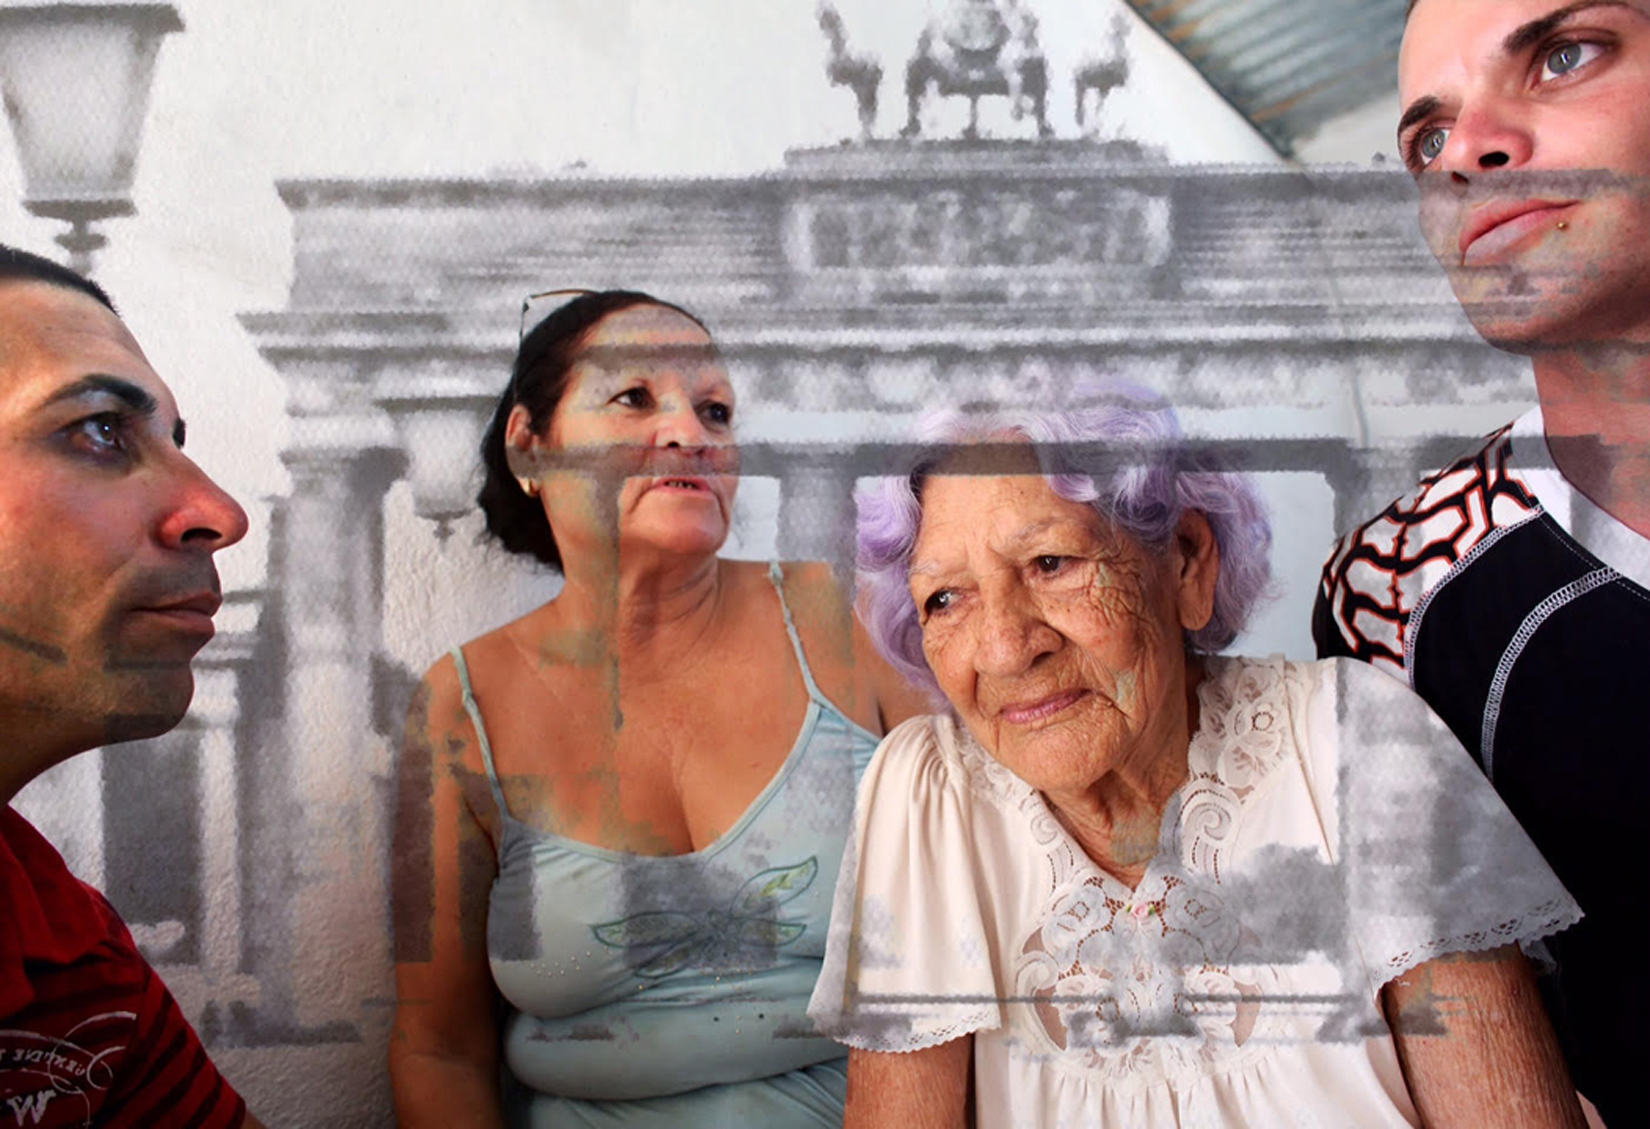 This is the Cuban family (sister, nephews and 93-year-old mother) of a man who fled from Cuba to Florida during the Mariel Boatlift of 1980. The four have been separated from their uncle, son and brother for 35 years. It is blended with a faraway view of the Brandenburg Gate, as close as you could get from East Berlin before the fall of the Berlin Wall - photographed during one of few vacations my grandparents and father could take in the Communist years. International travel was limited to pre-approved countries within the Eastern Bloc (while Western nations were accessible with government approval only.) The merging of these images speaks of both the desire for and difficulty of immigration.